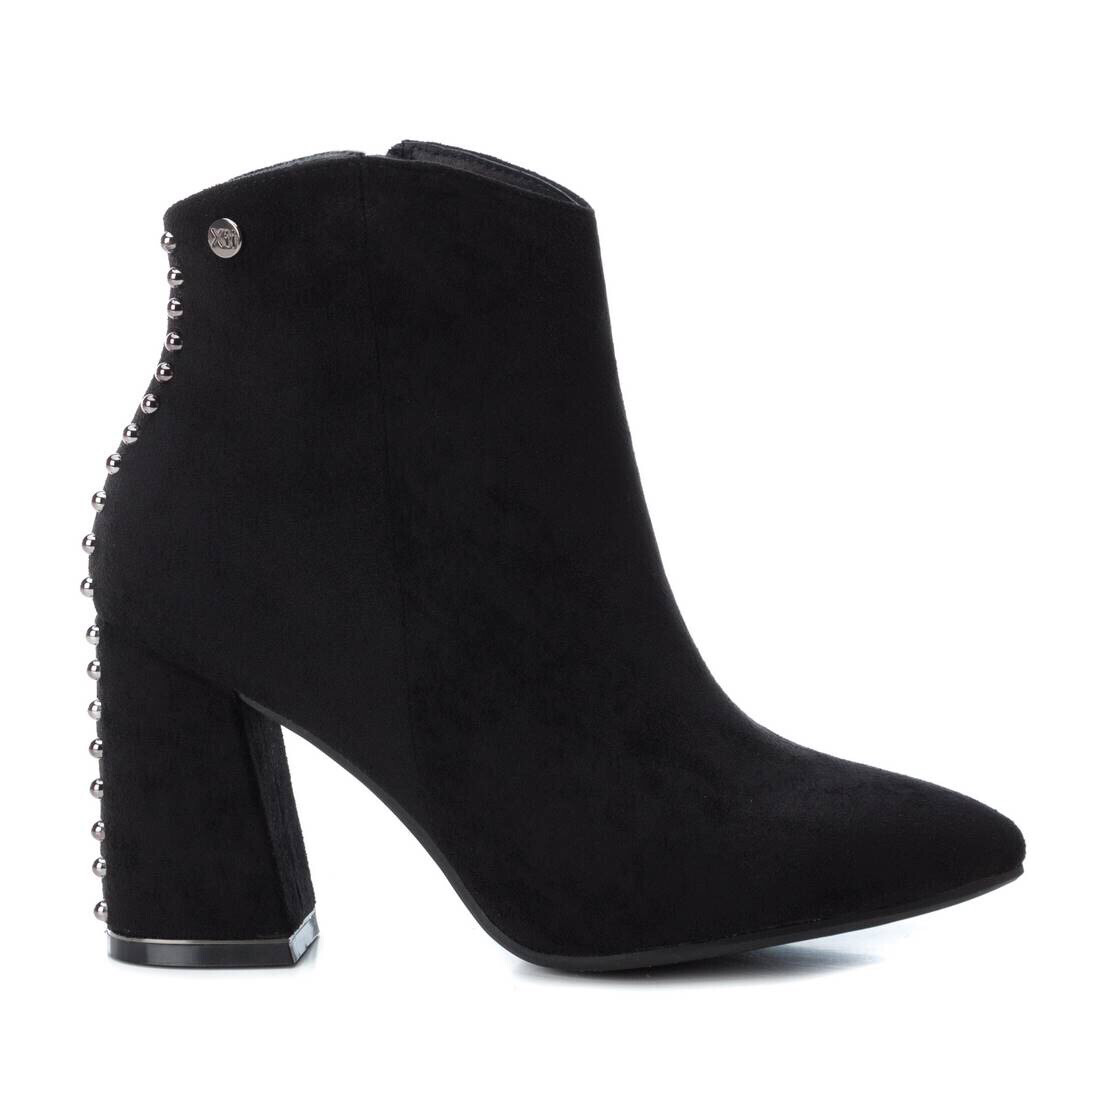 Black Ankle Boot With Studded Detail